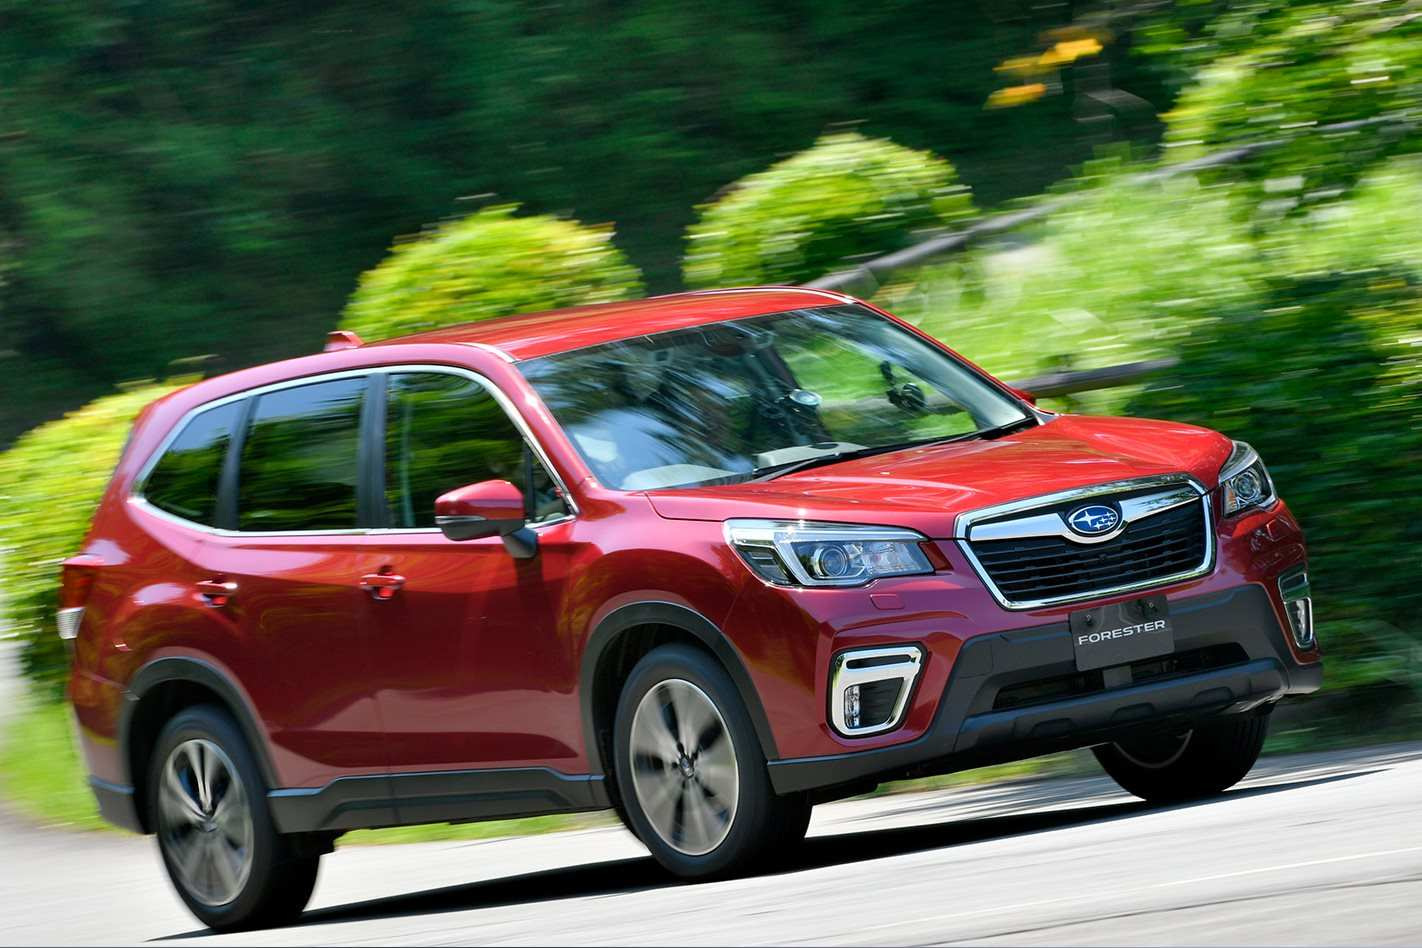 56 Best Review Subaru Forester 2019 Ground Clearance Rumors Engine by Subaru Forester 2019 Ground Clearance Rumors